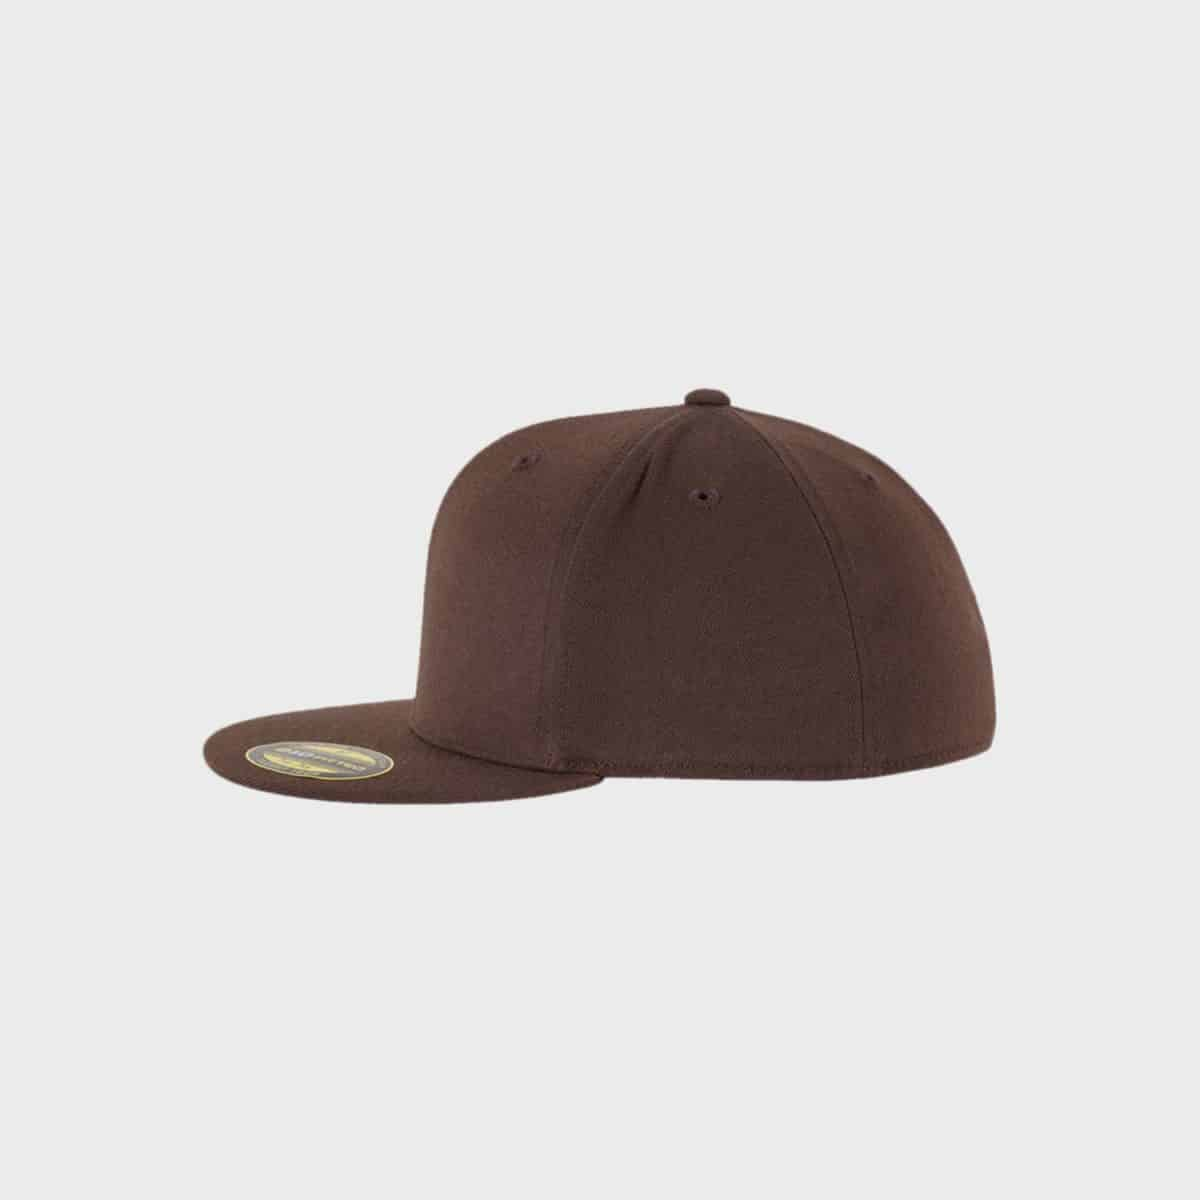 Flexfit FlexfitCaps FFE 6210 Brown Side